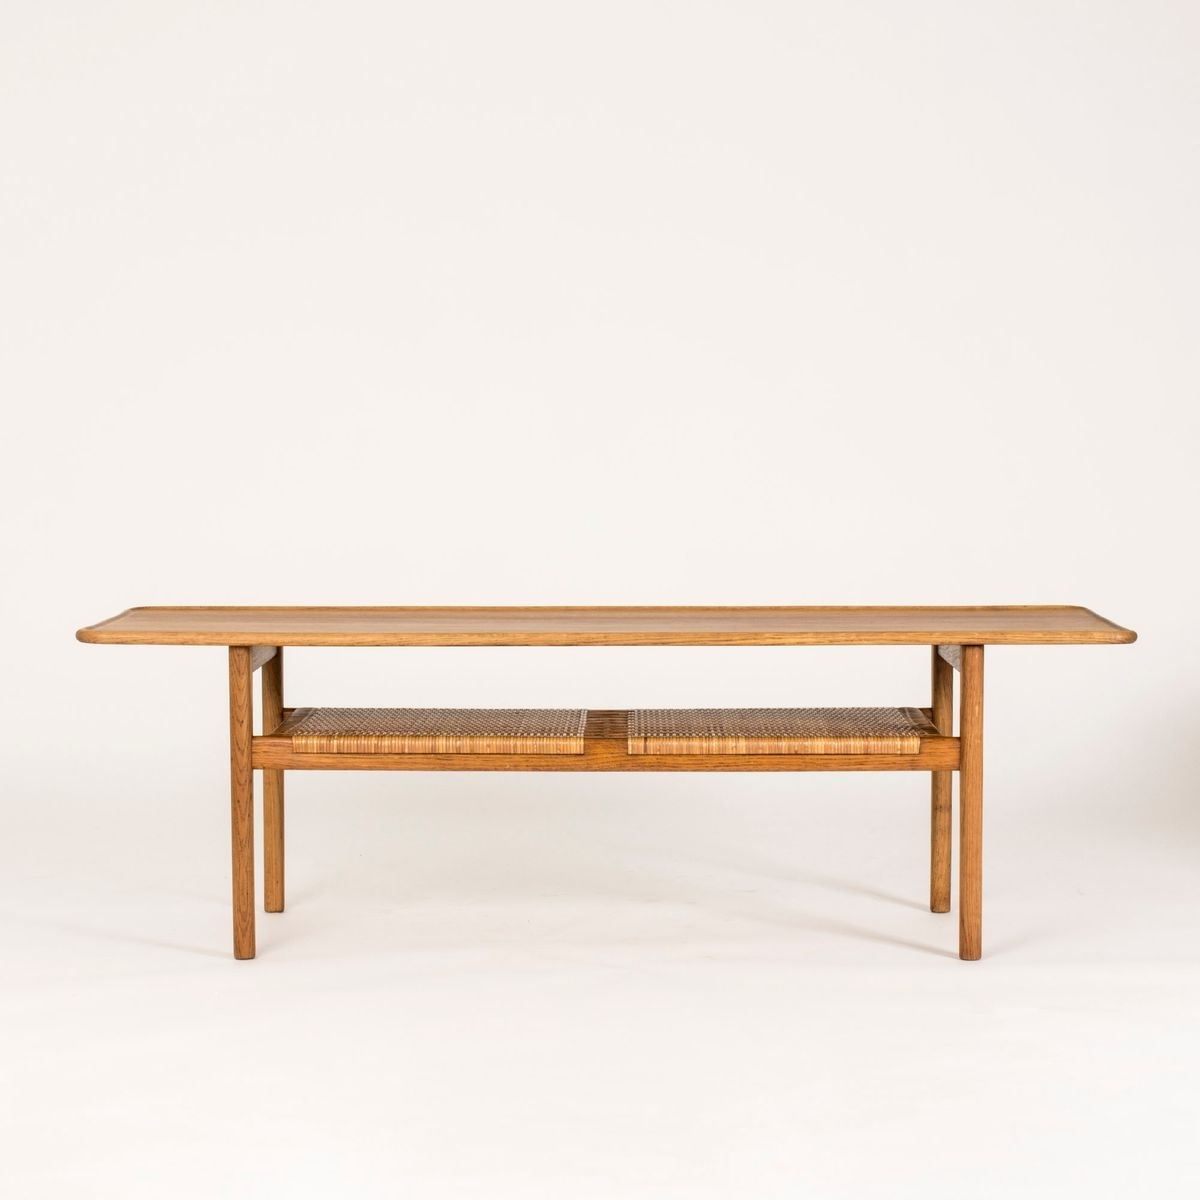 Preferred Smoked Oak Coffee Tables Intended For Mid Century Smoked Oak & Rattan Coffee Tablehans J (View 2 of 20)